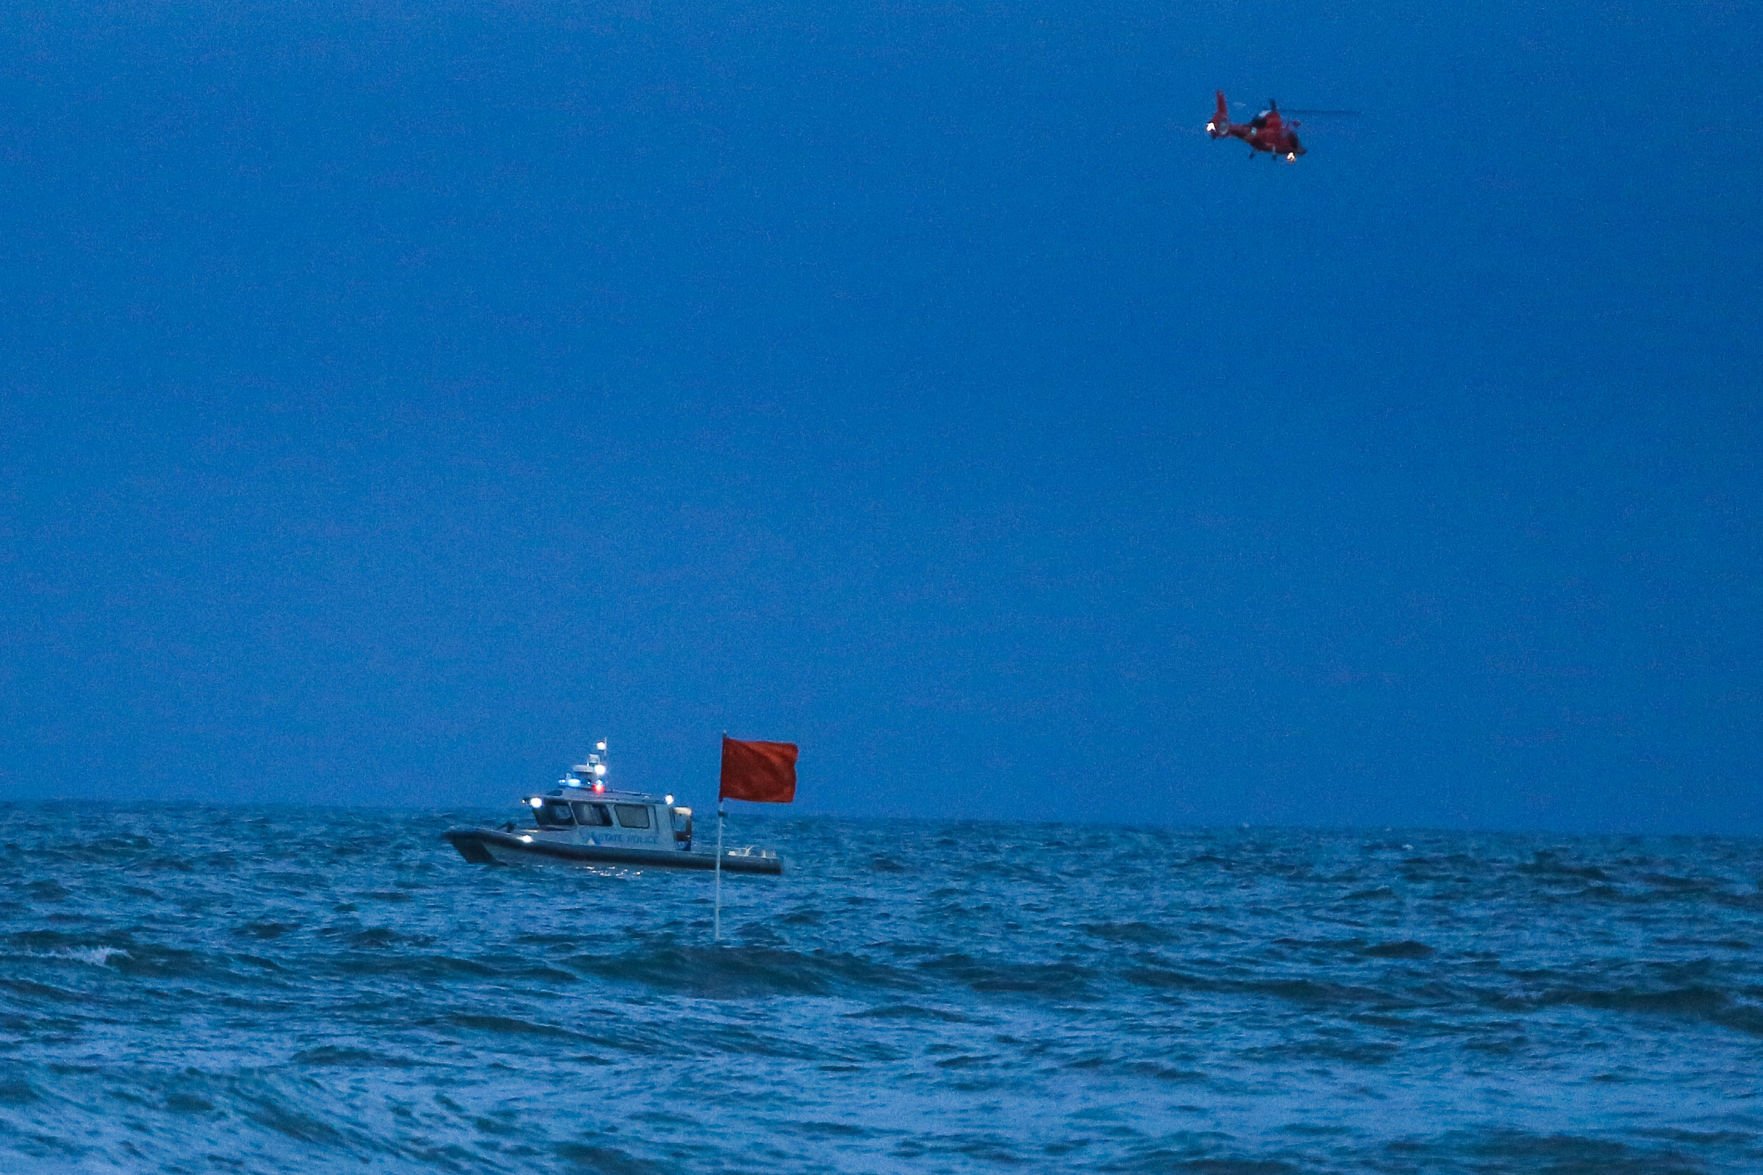 Body found on Jersey Shore beach near spot swimmer went missing